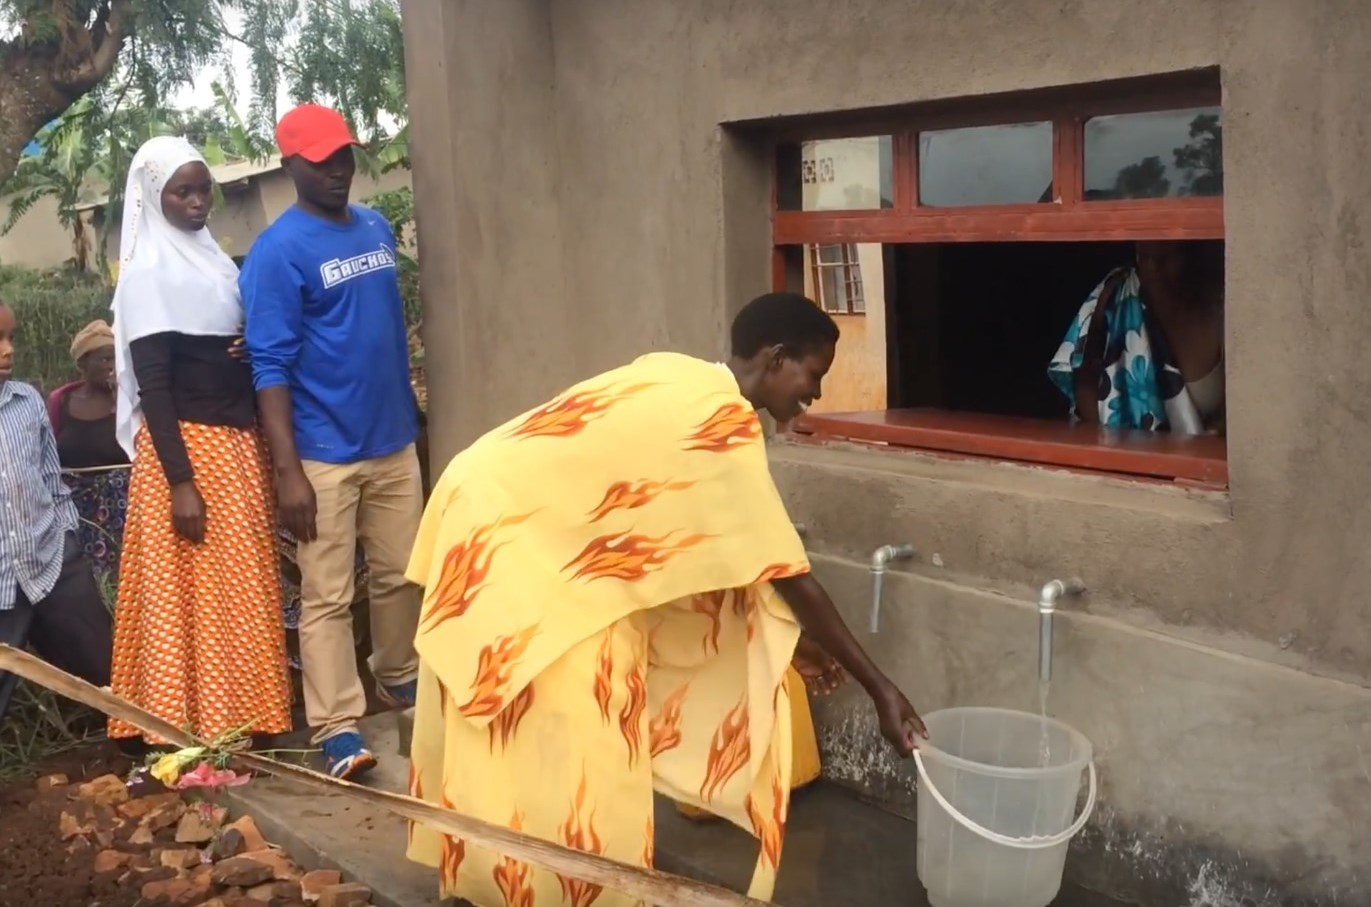 RUGANEHEZA'S WATER BUSINESS is well established now, serving the co-ops members and all their neighbors with a priceless resource: clean water.